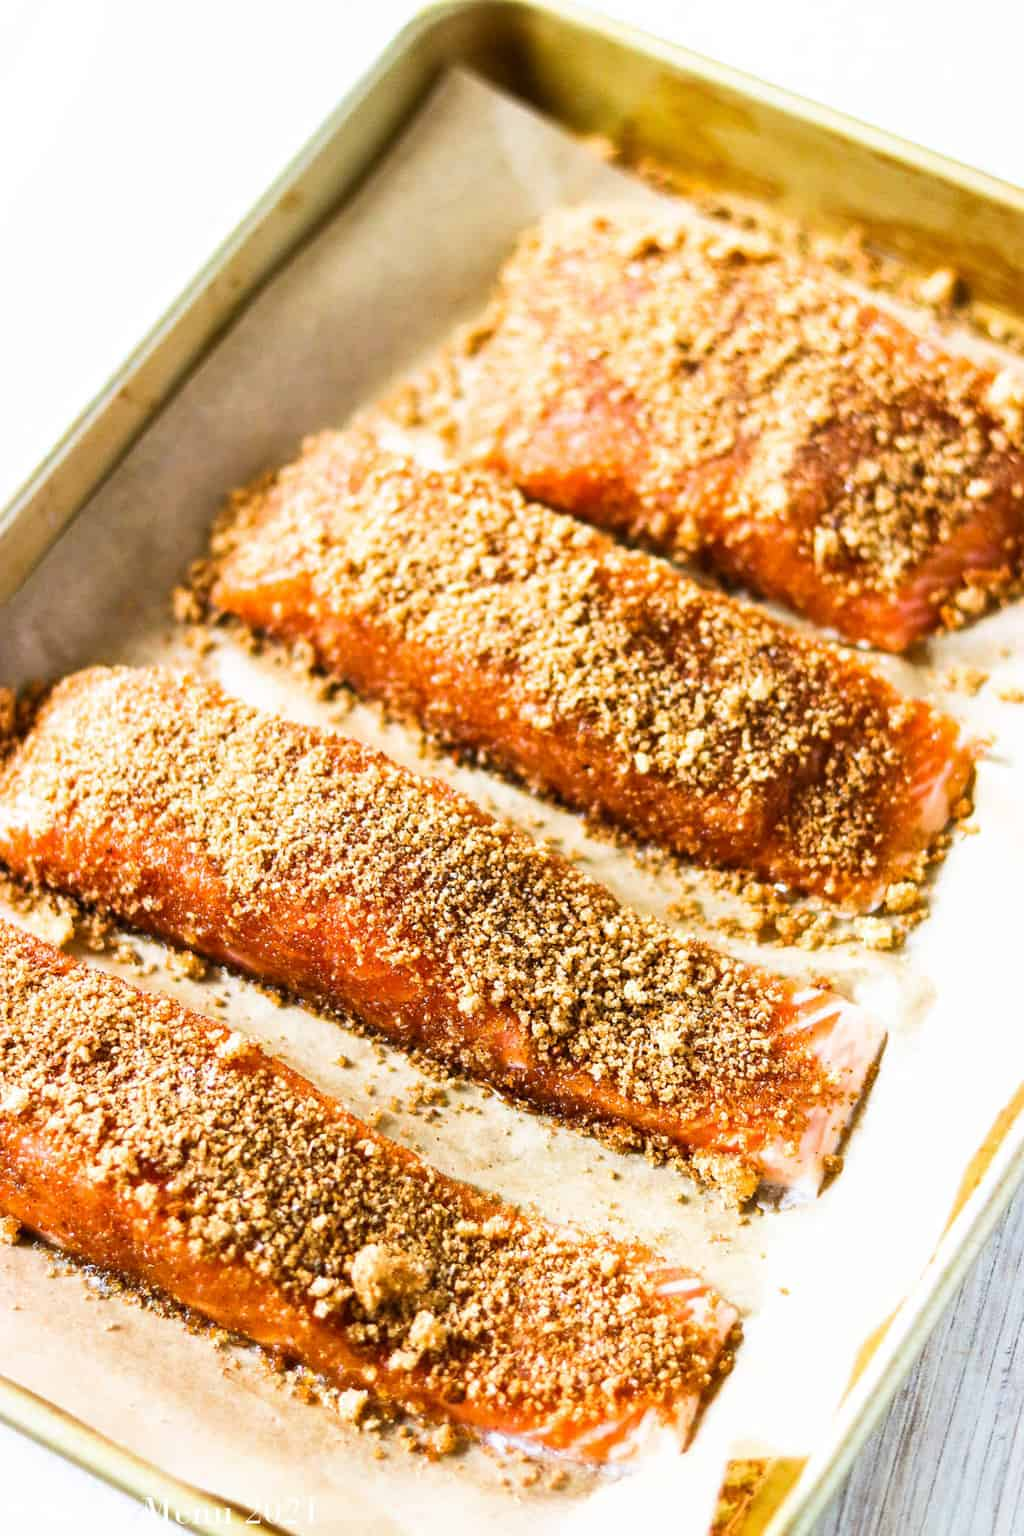 Pieces of salmon on a cuting board with the brown sugar spice blend rubbed on top